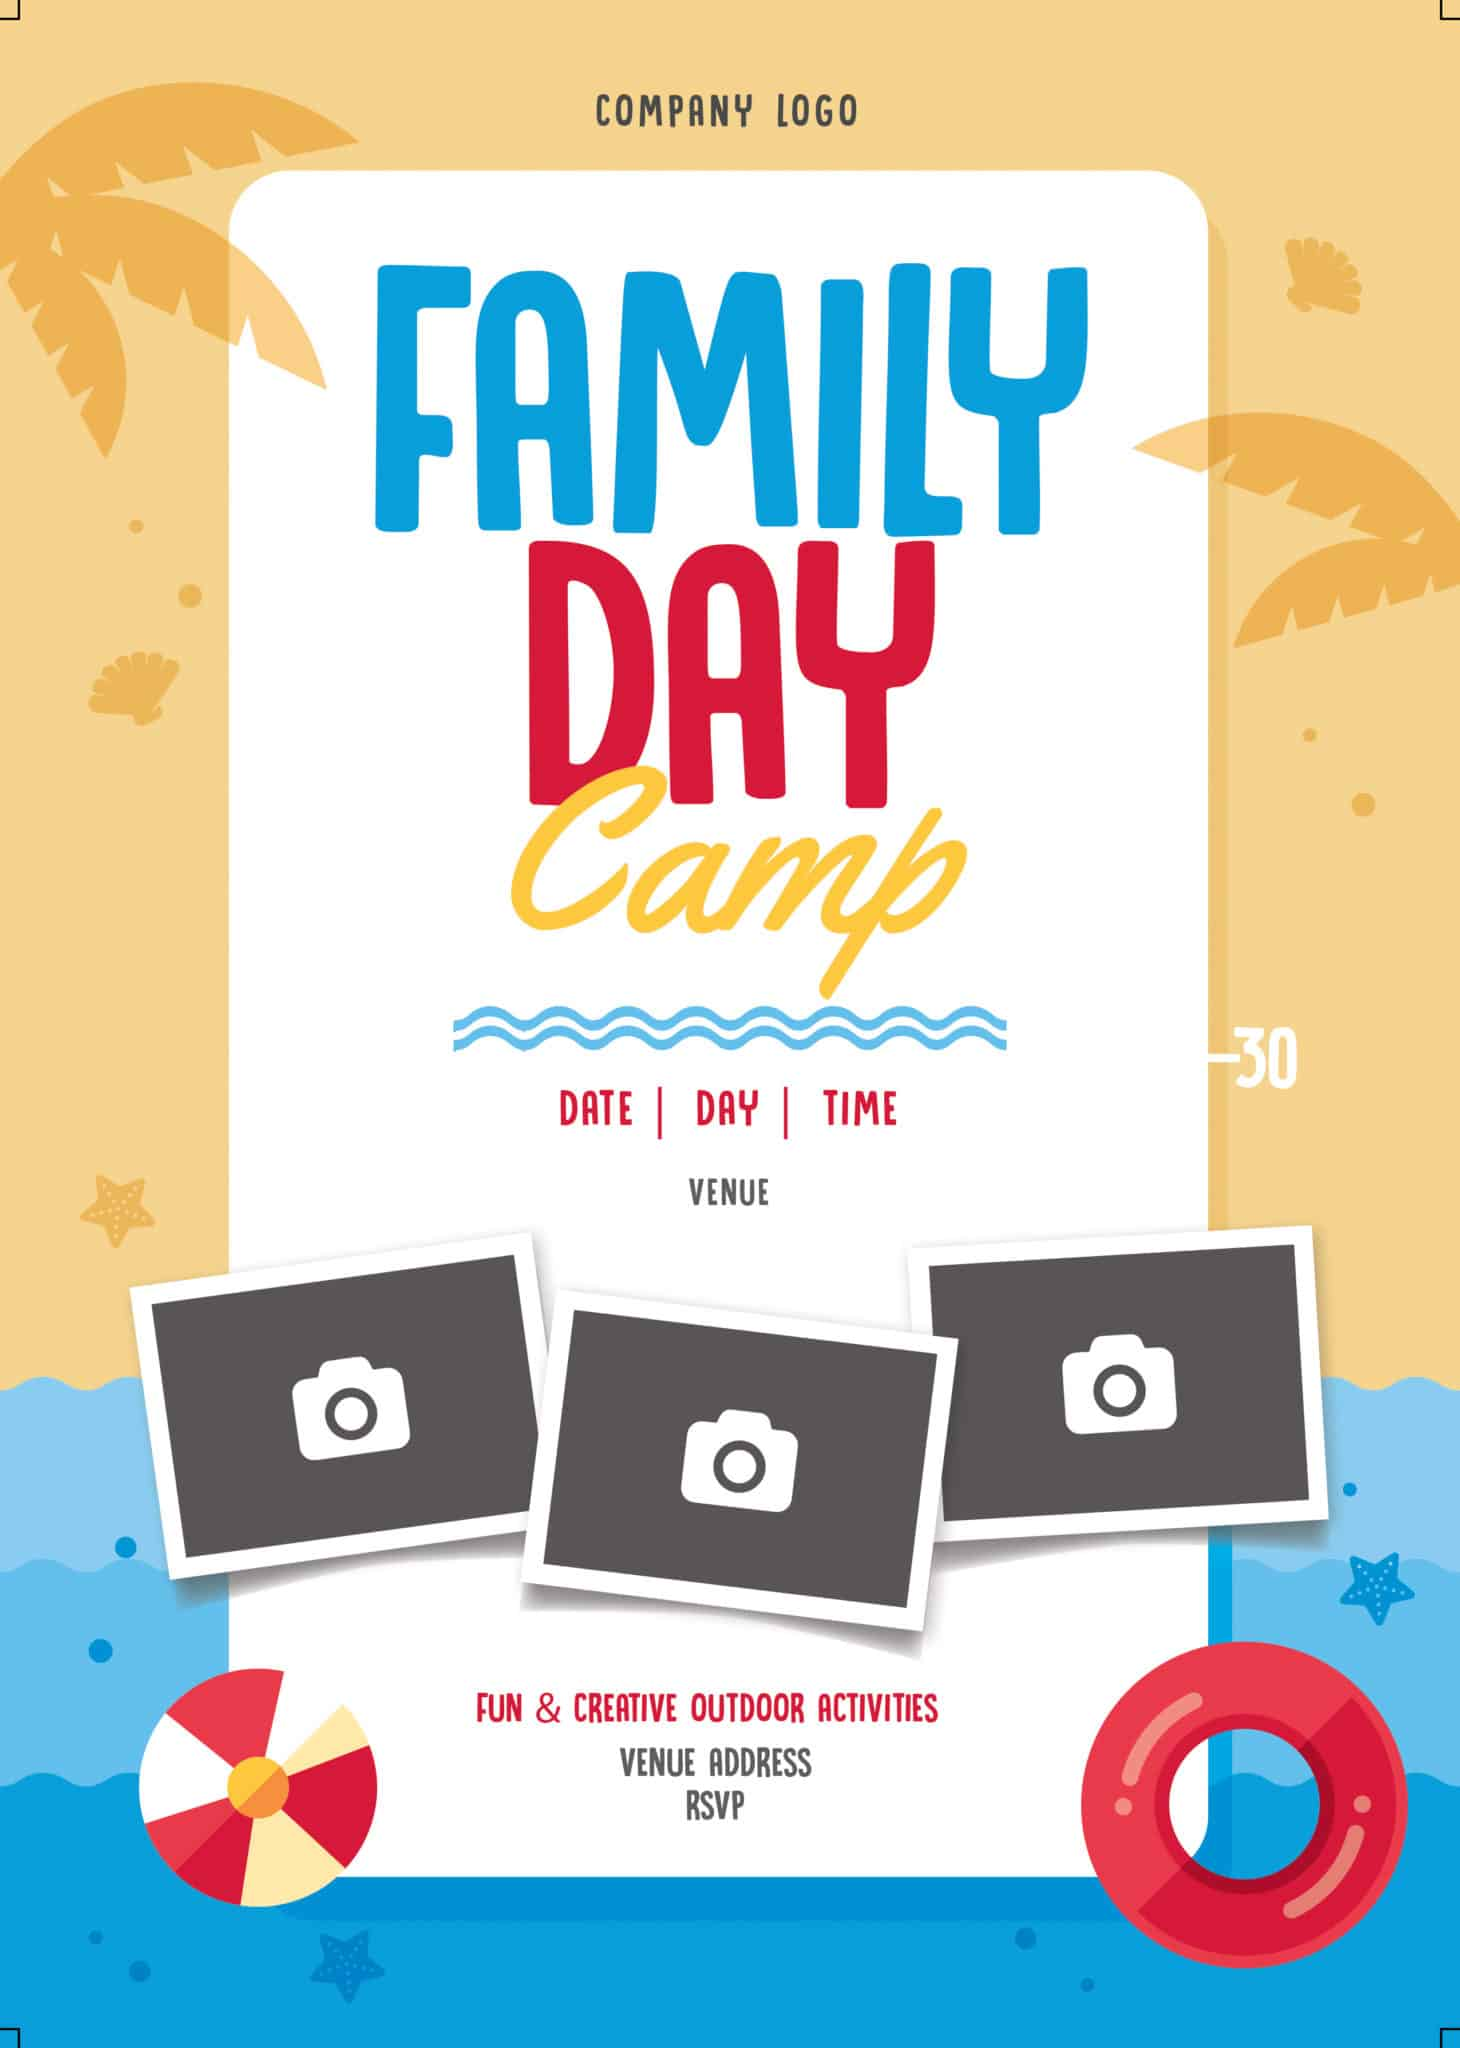 Corporate family day activities